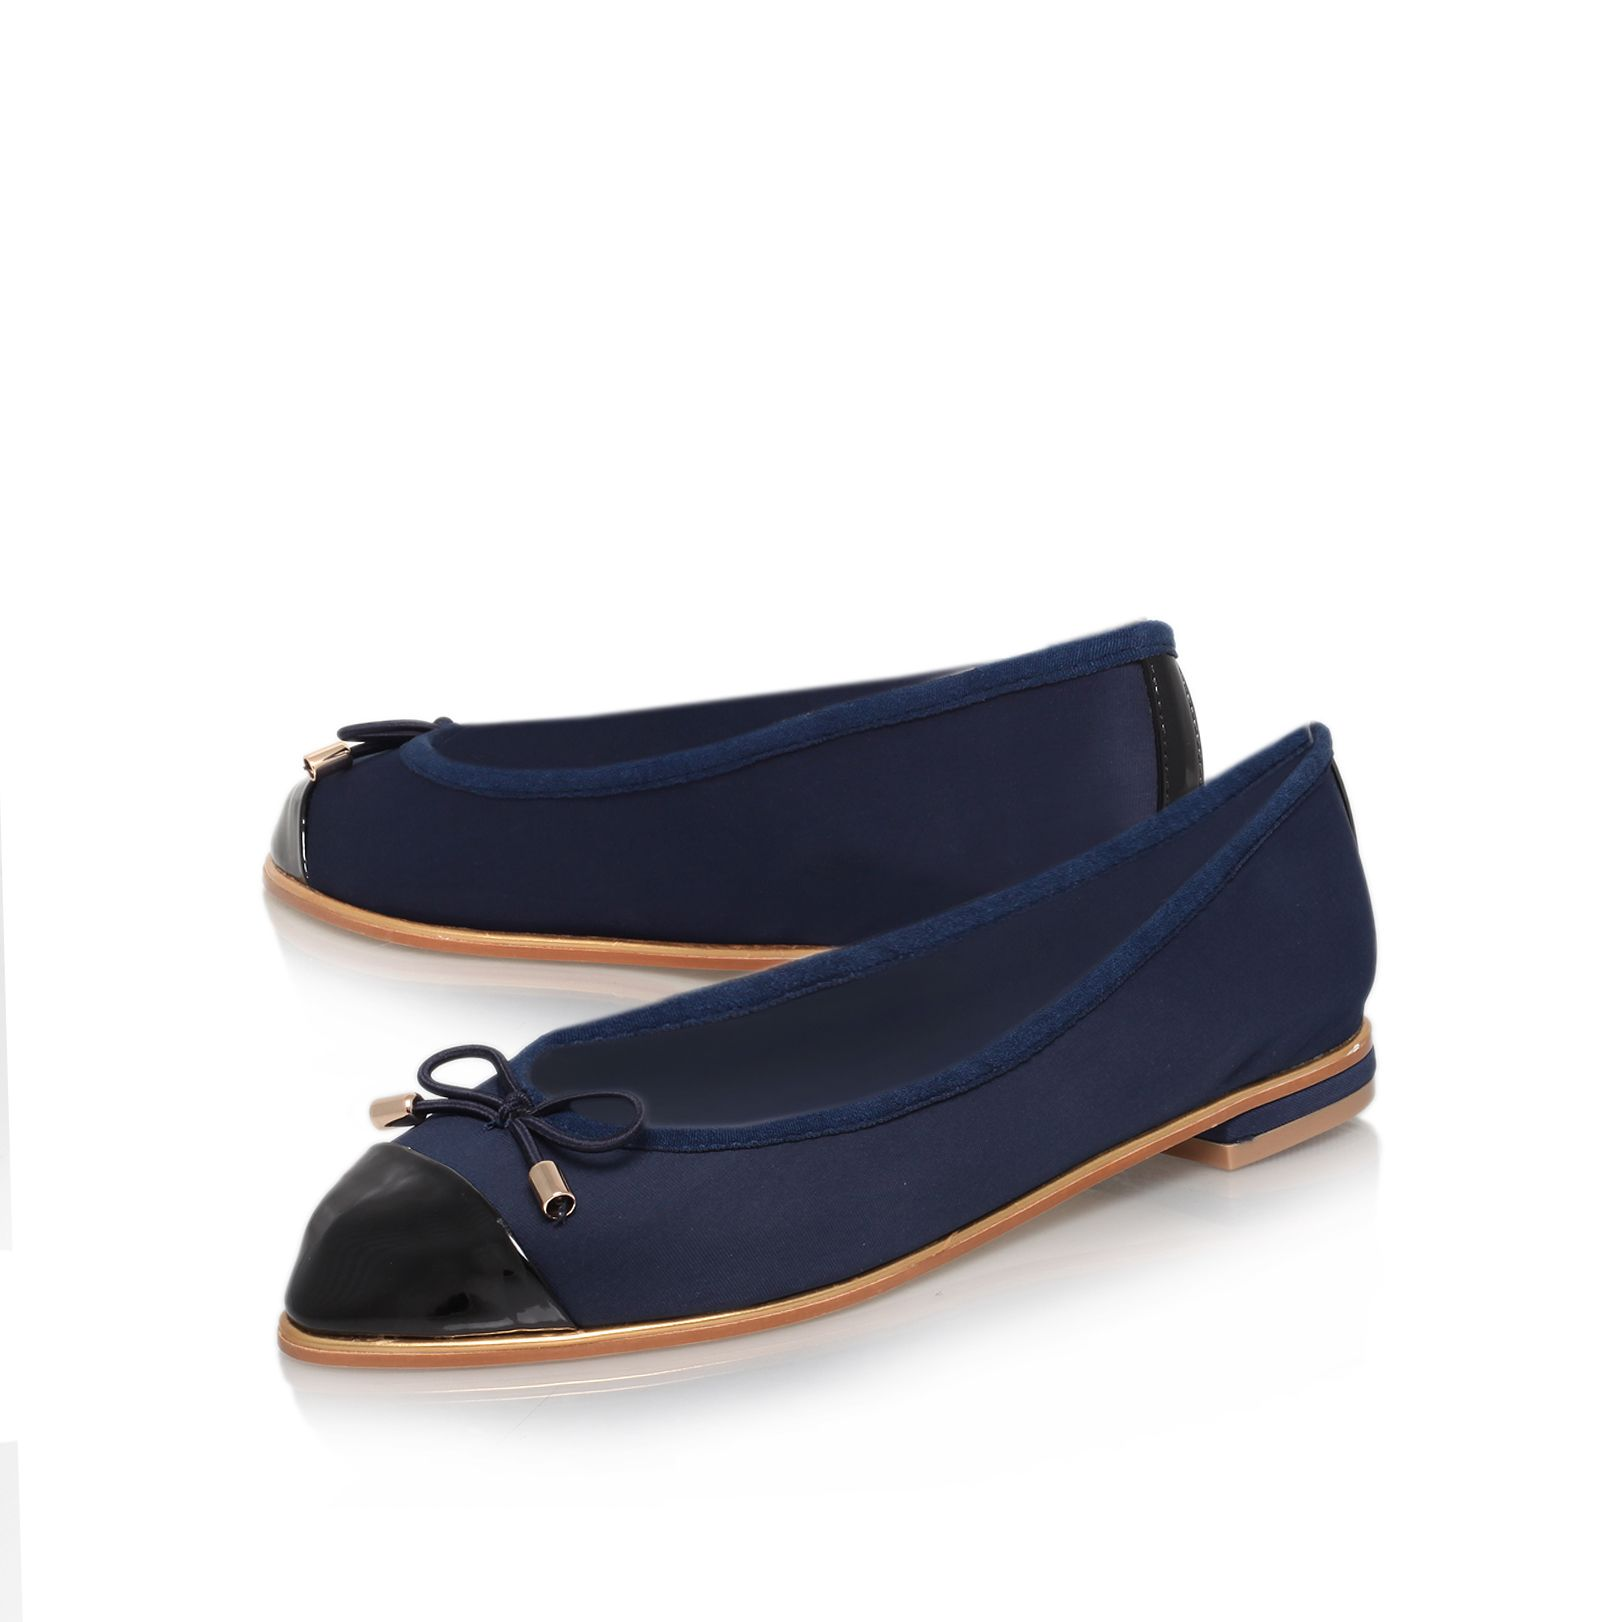 Lolly flat court shoes